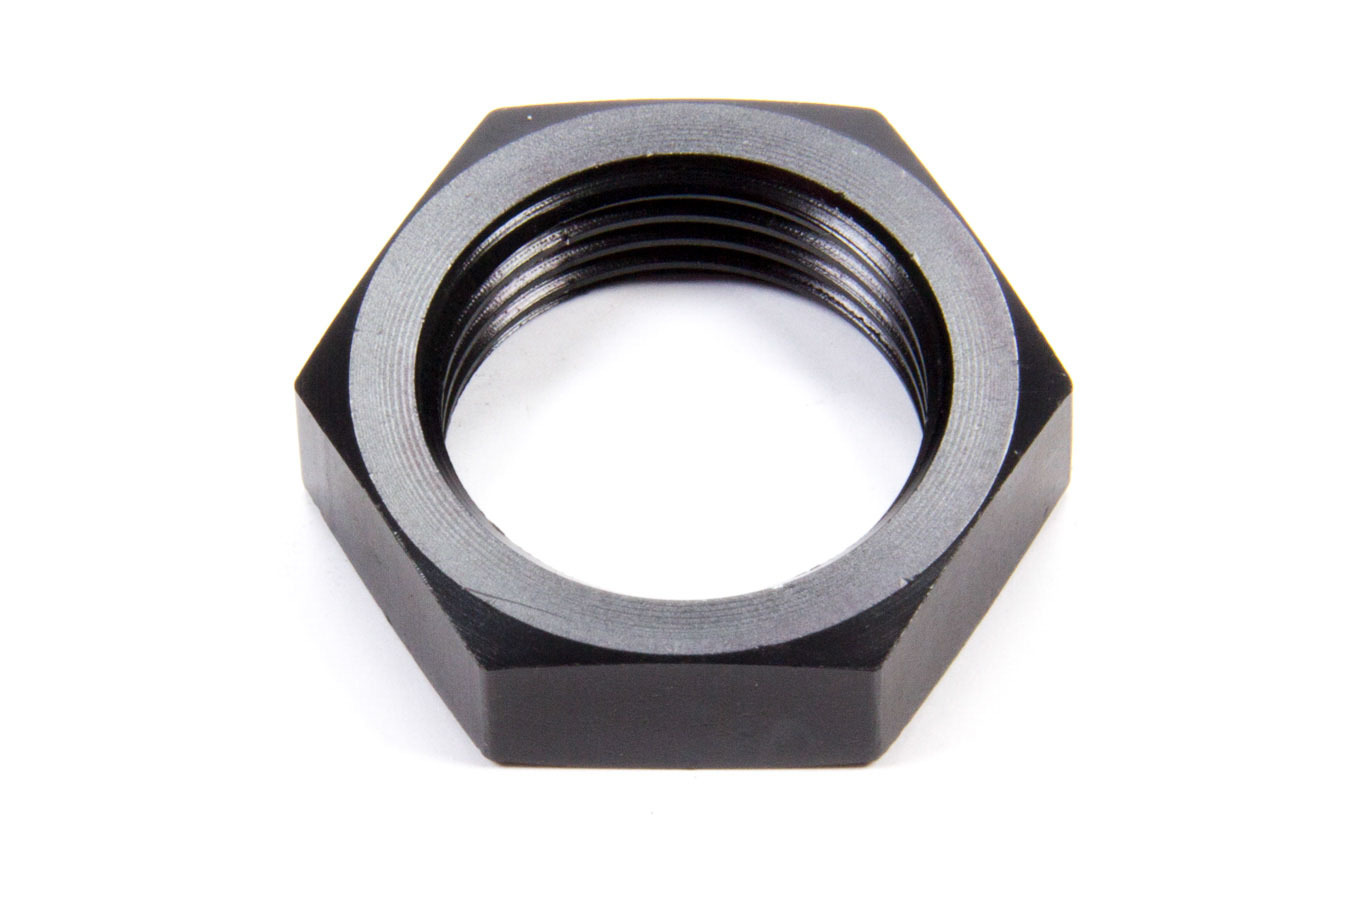 Aeroquip FCM5105 Bulkhead Fitting Nut, 12 AN, Aluminum, Black Anodize, Each